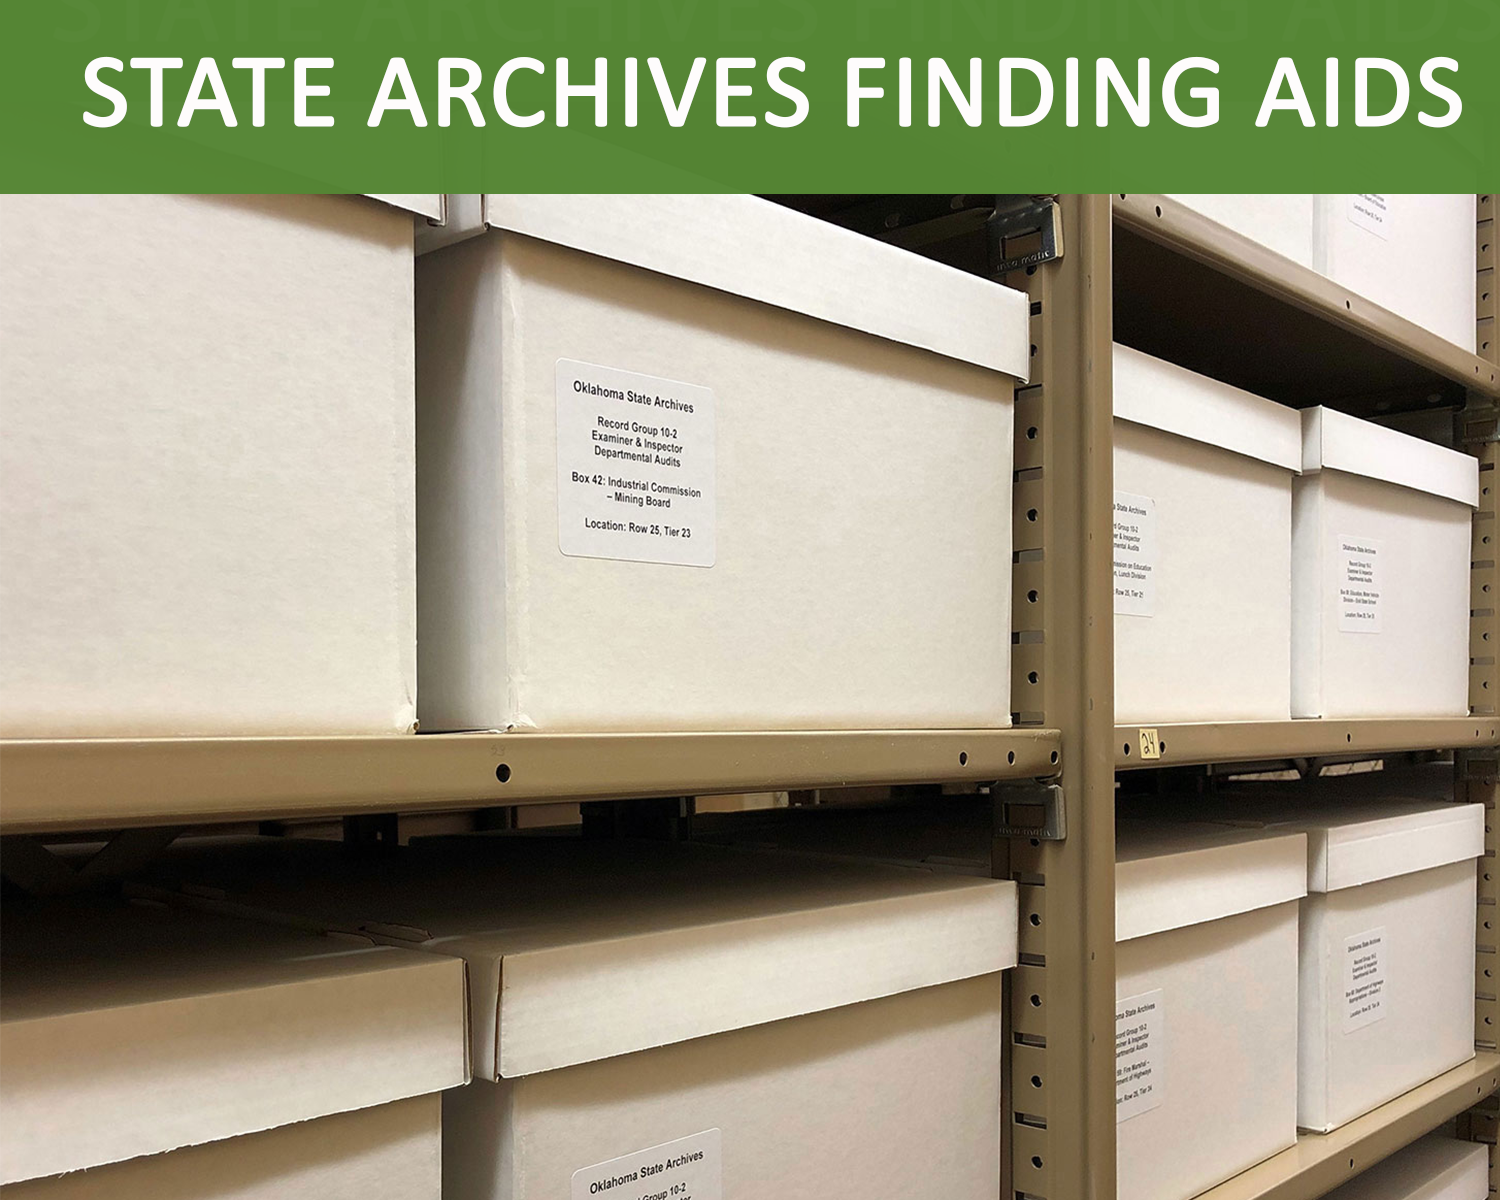 Finding aids for state archives